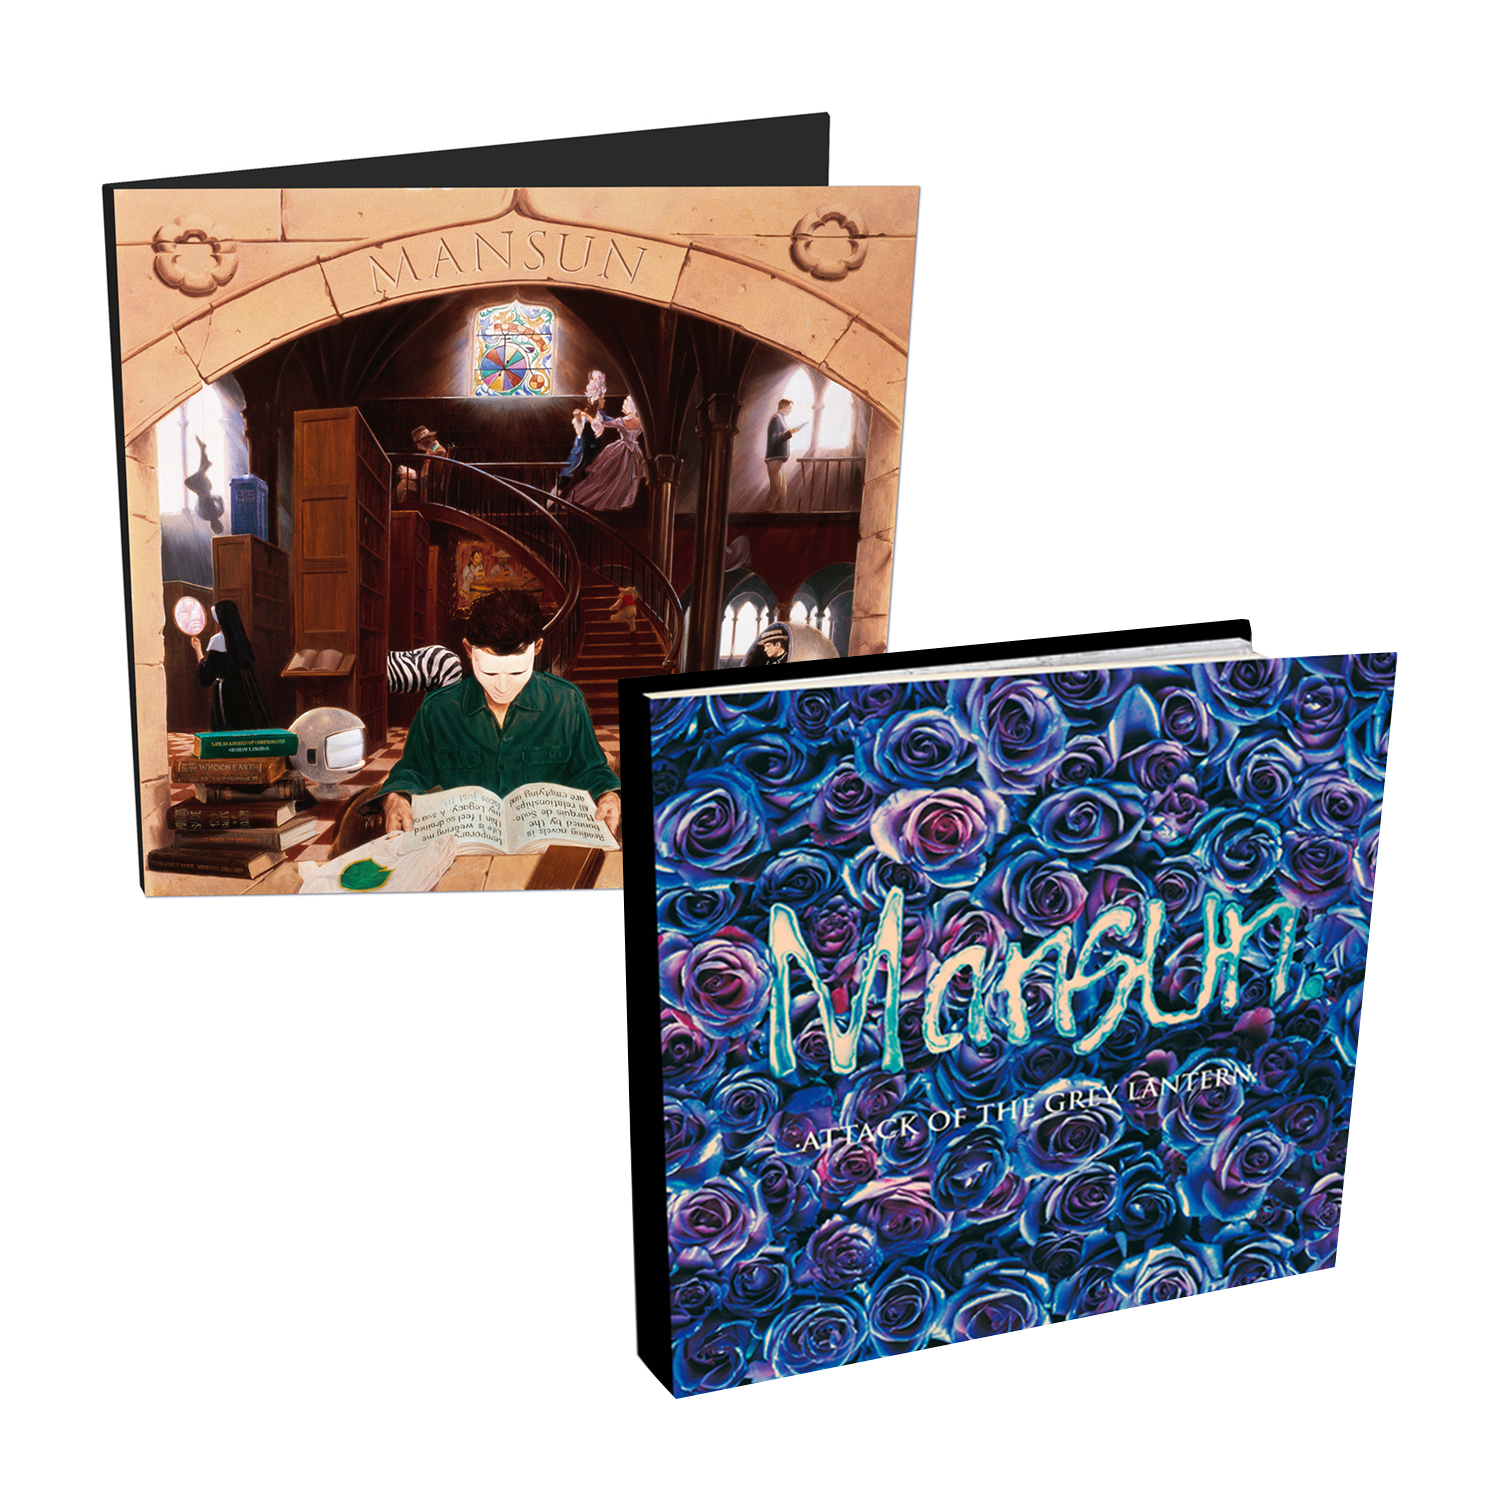 Buy Online Mansun - SIX CD Media Book + Attack Of The Grey Lantern CD Media Book